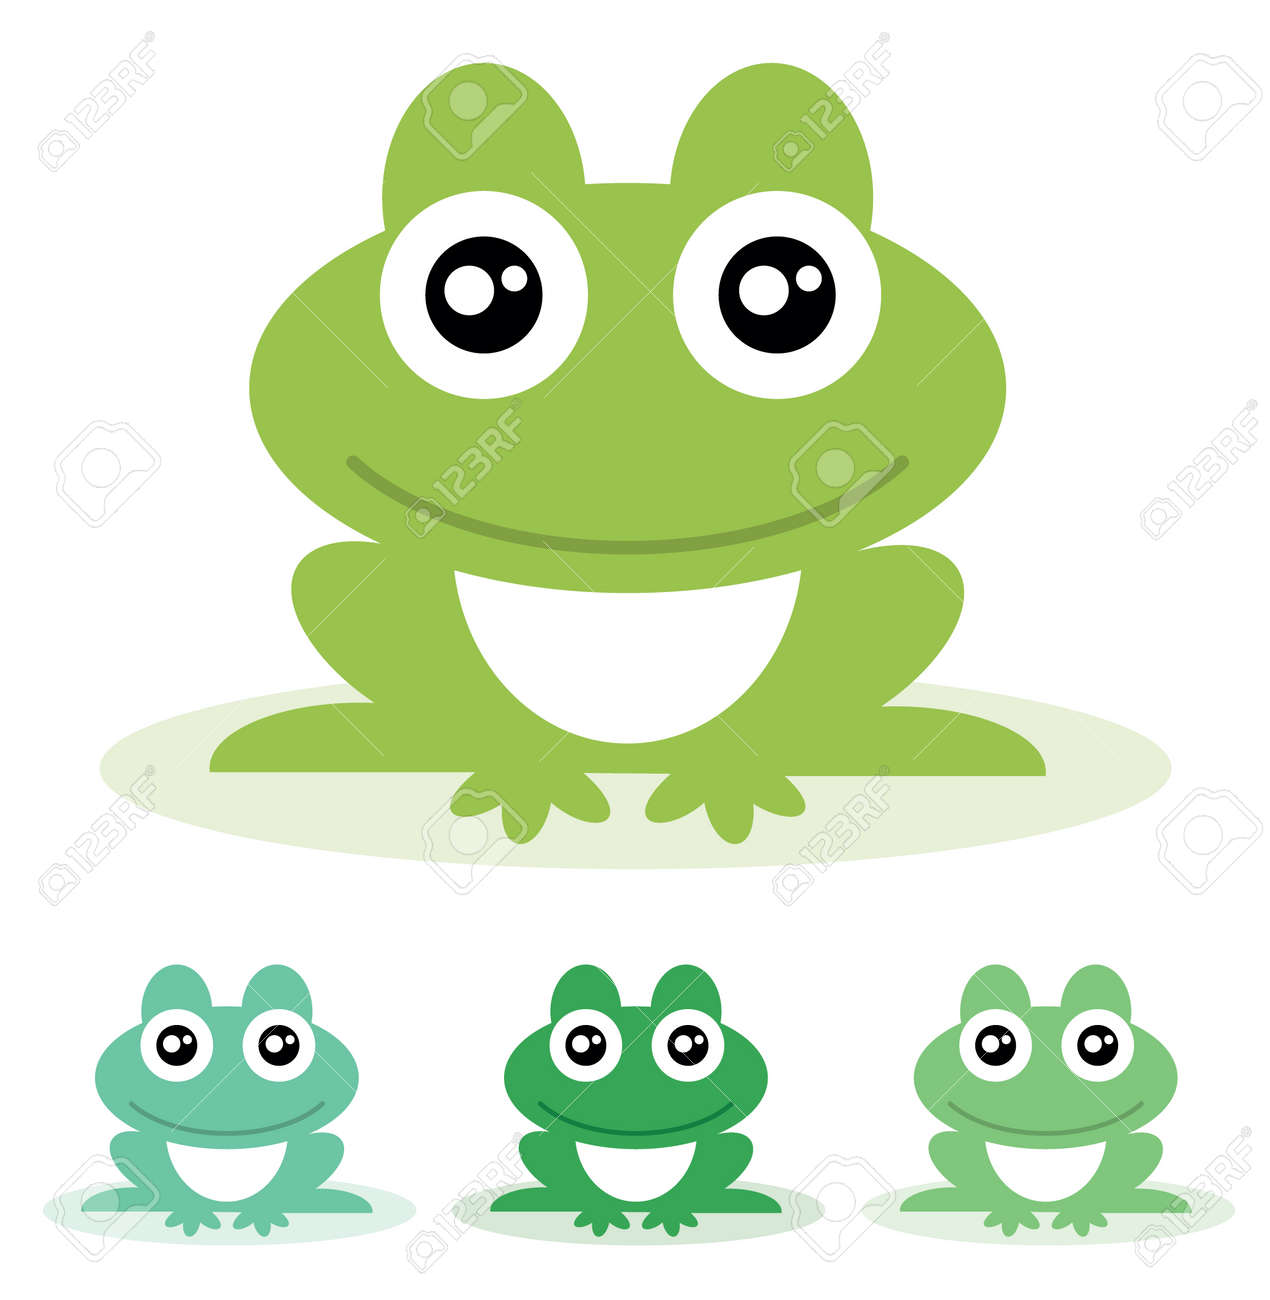 frog vector illustration royalty free cliparts vectors and stock rh 123rf com Vector The Crocodile Turtle Vector